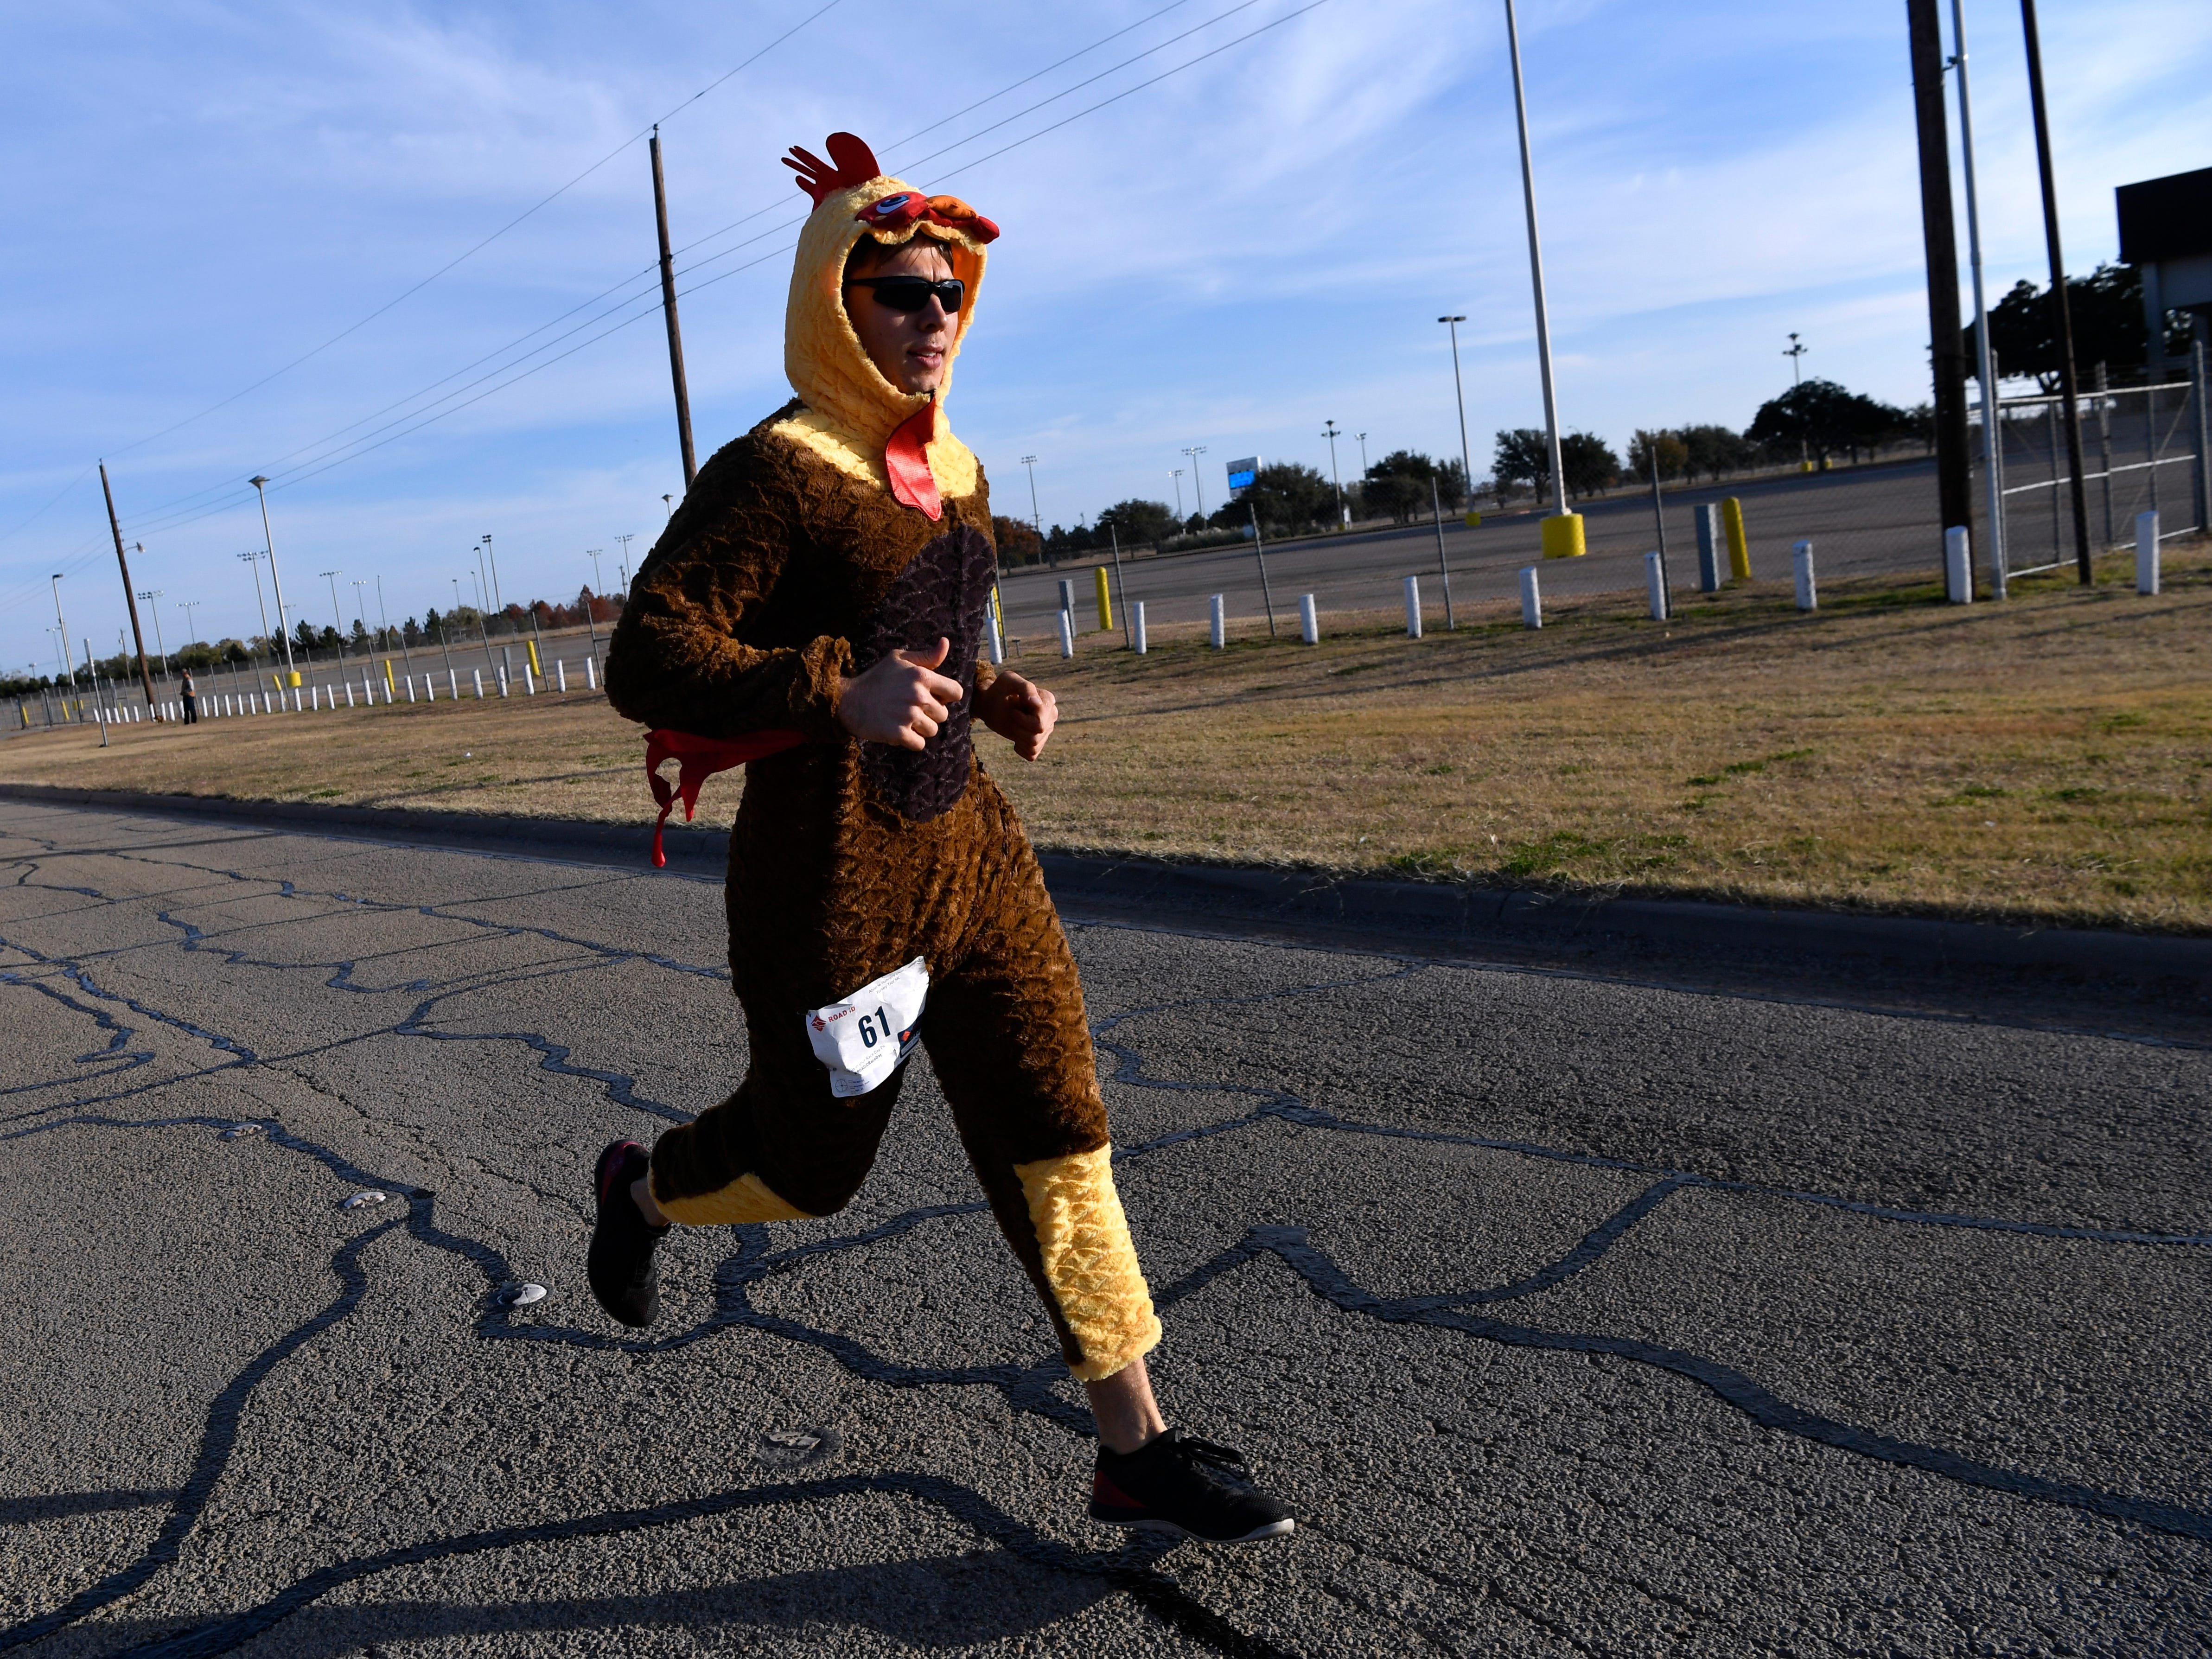 "Josh Boynton sidesteps the crowd at the beginning of the Abilene Turkey Trot 5K wearing a turkey suit. He and friend Rob Jacques both wore the outfits and while festive for the Thanksgiving holiday, realized soon during the run that the garments didn't breath very well. ""We were basting in our natural juices,"" Boynton joked. Sponsored by the Abilene Runners Club, the Thanksgiving 5K course started at Shotwell Stadium, went through the adjacent Lytle neighborhood, then finished back at Shotwell. Proceeds benefited the West Texas Rehab Center and the Abilene Runners Club; their motto for the day was, ""Walk/run 3.1 miles and eat guilt free the rest of the day!"""